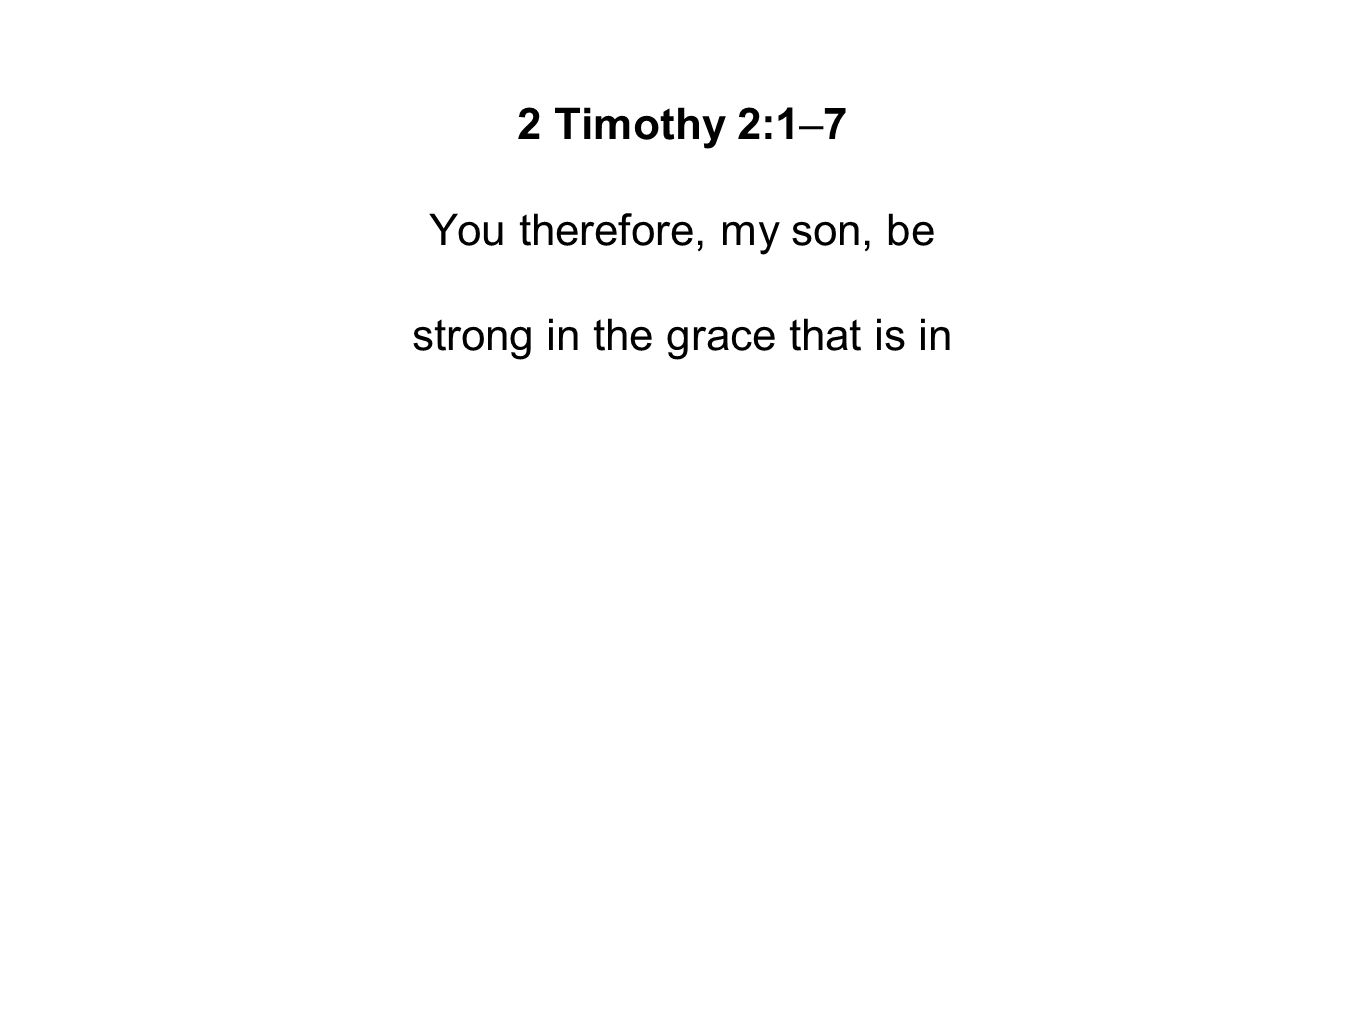 2 Timothy 2:1–7 You therefore, my son, be strong in the grace that is in